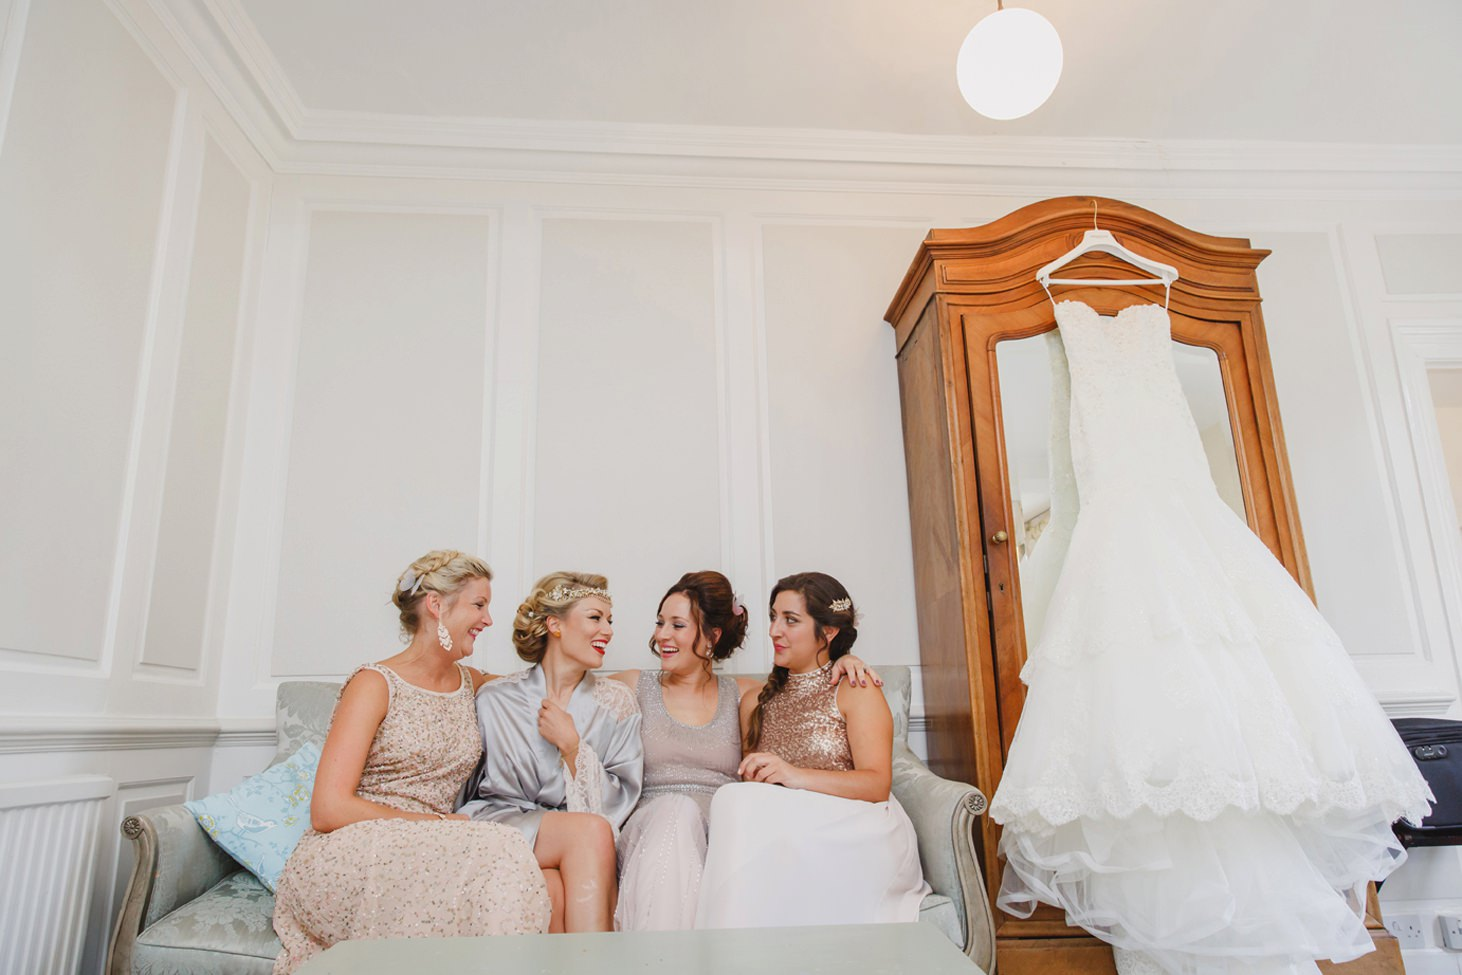 The Rectory Hotel Crudwell bride and bridesmaids together